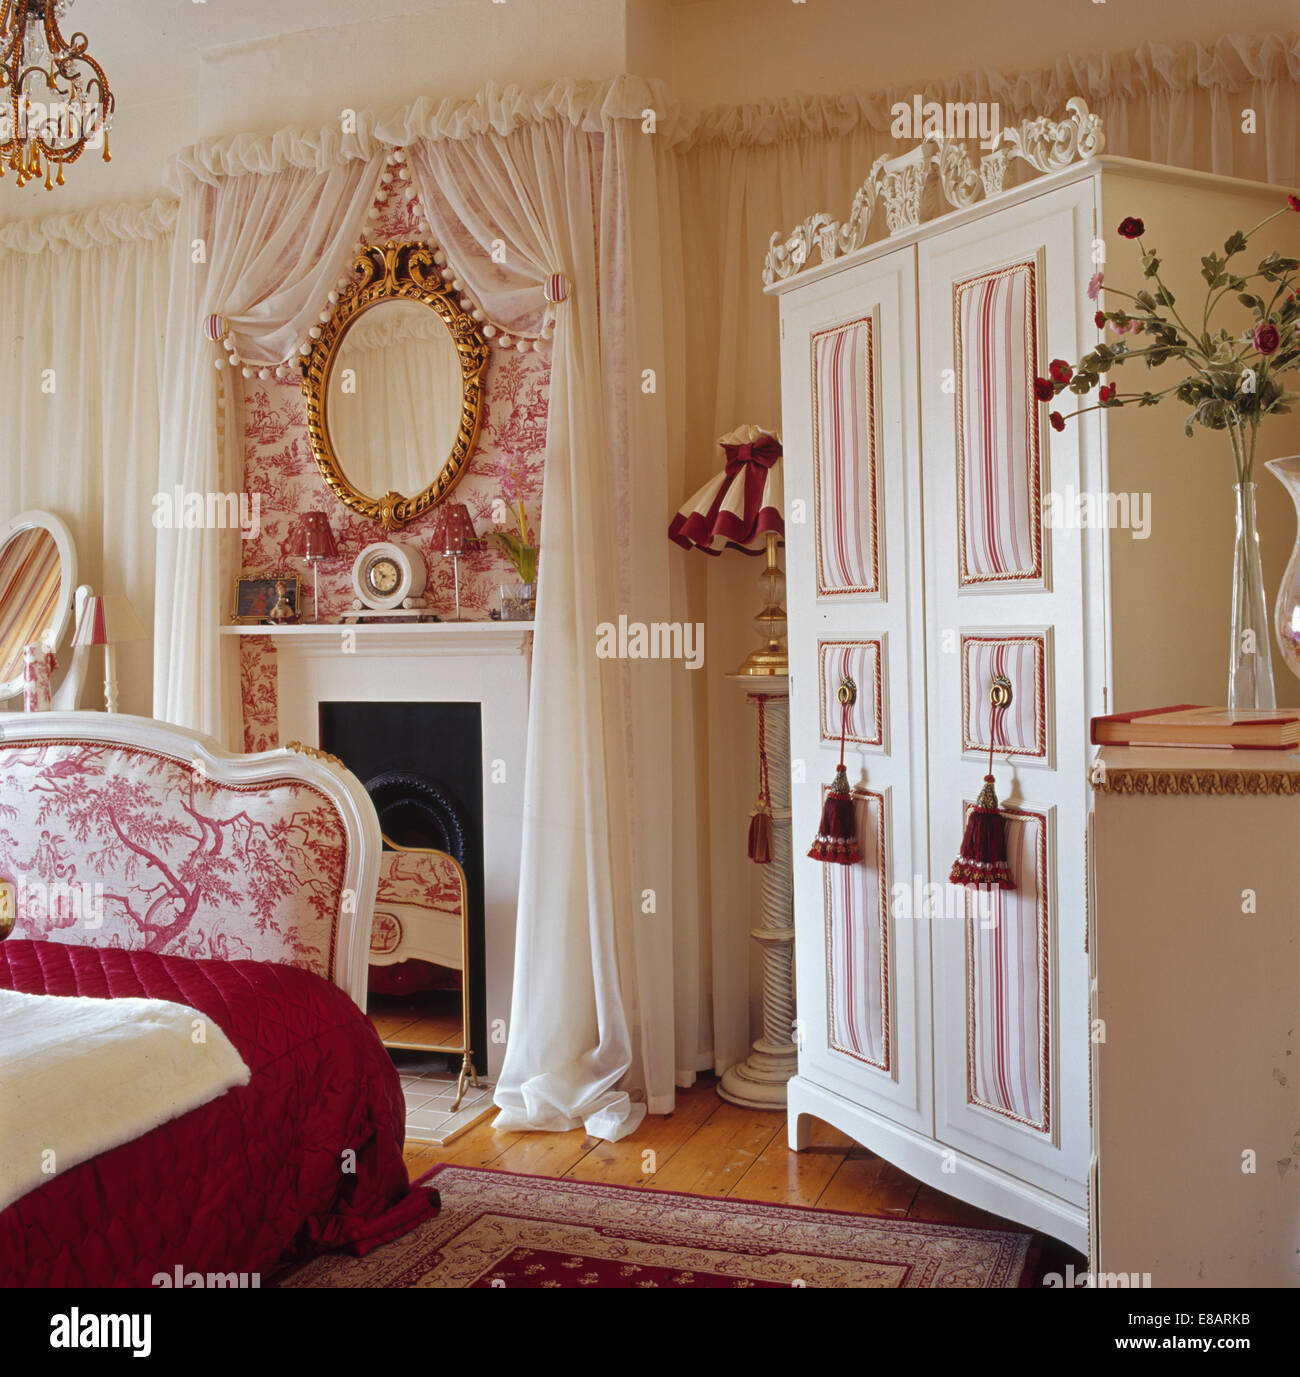 Cream Wardrobe In Bedroom With Voile Drapes On Walls And Toile De Jouy Wallpaper Above Fireplace